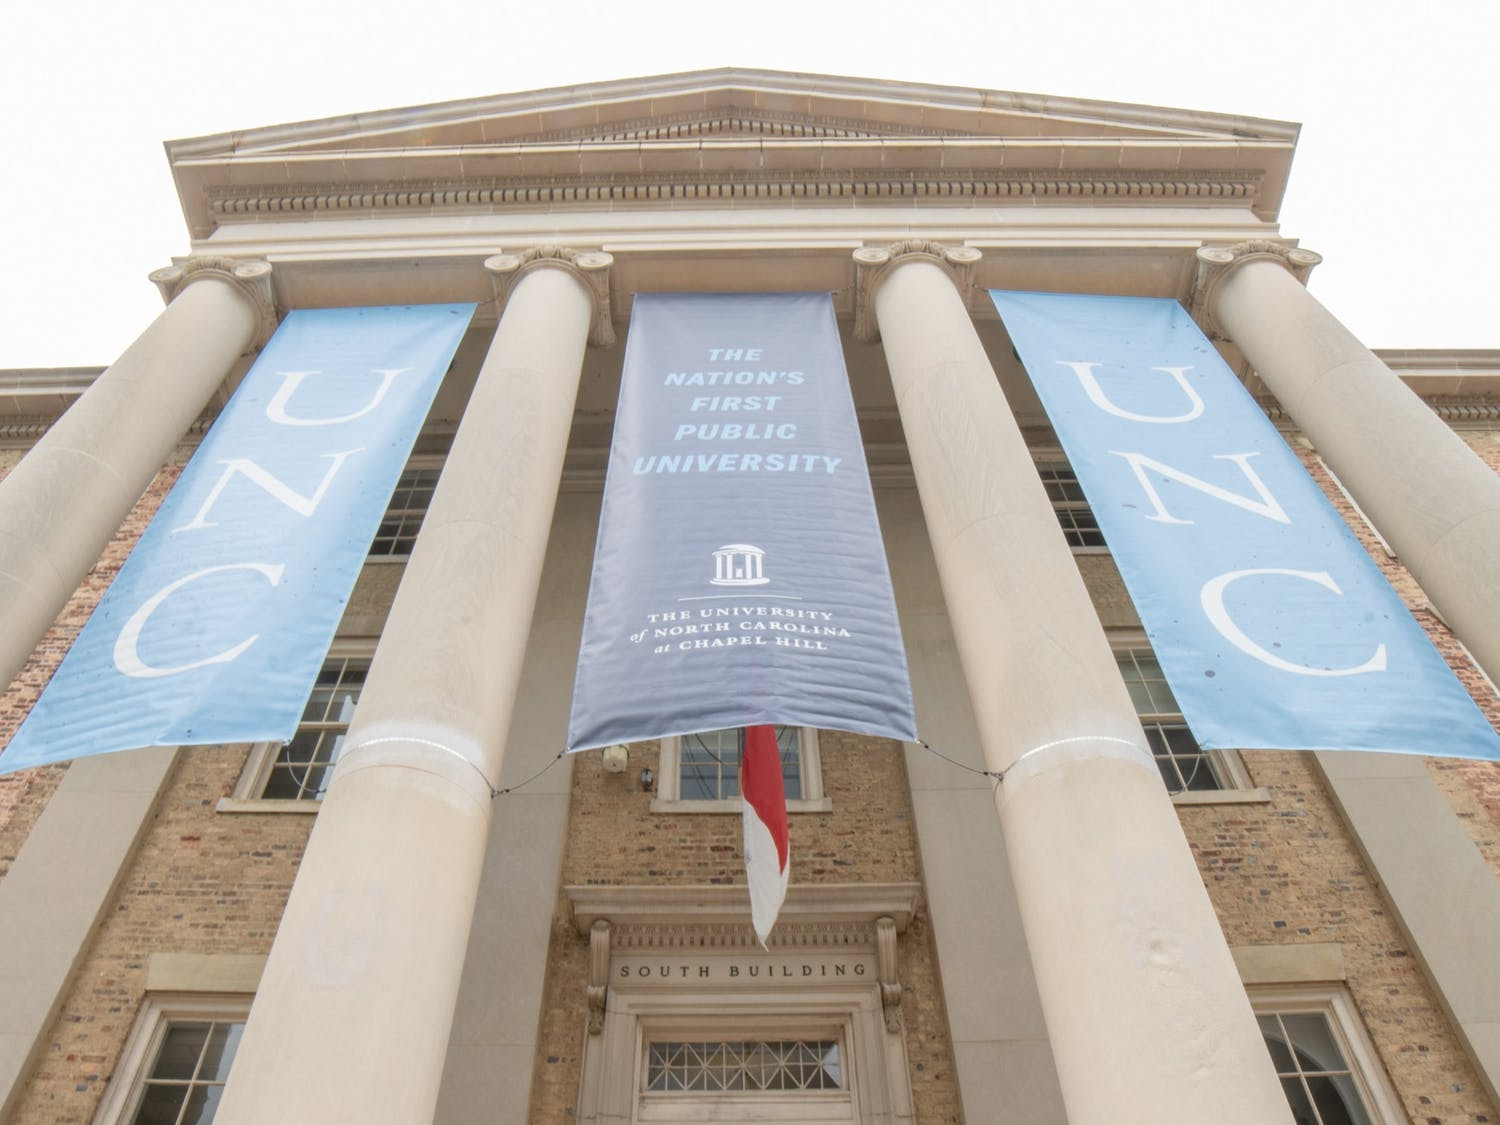 Banners fly on UNC's South Building on Oct. 11, 2021.